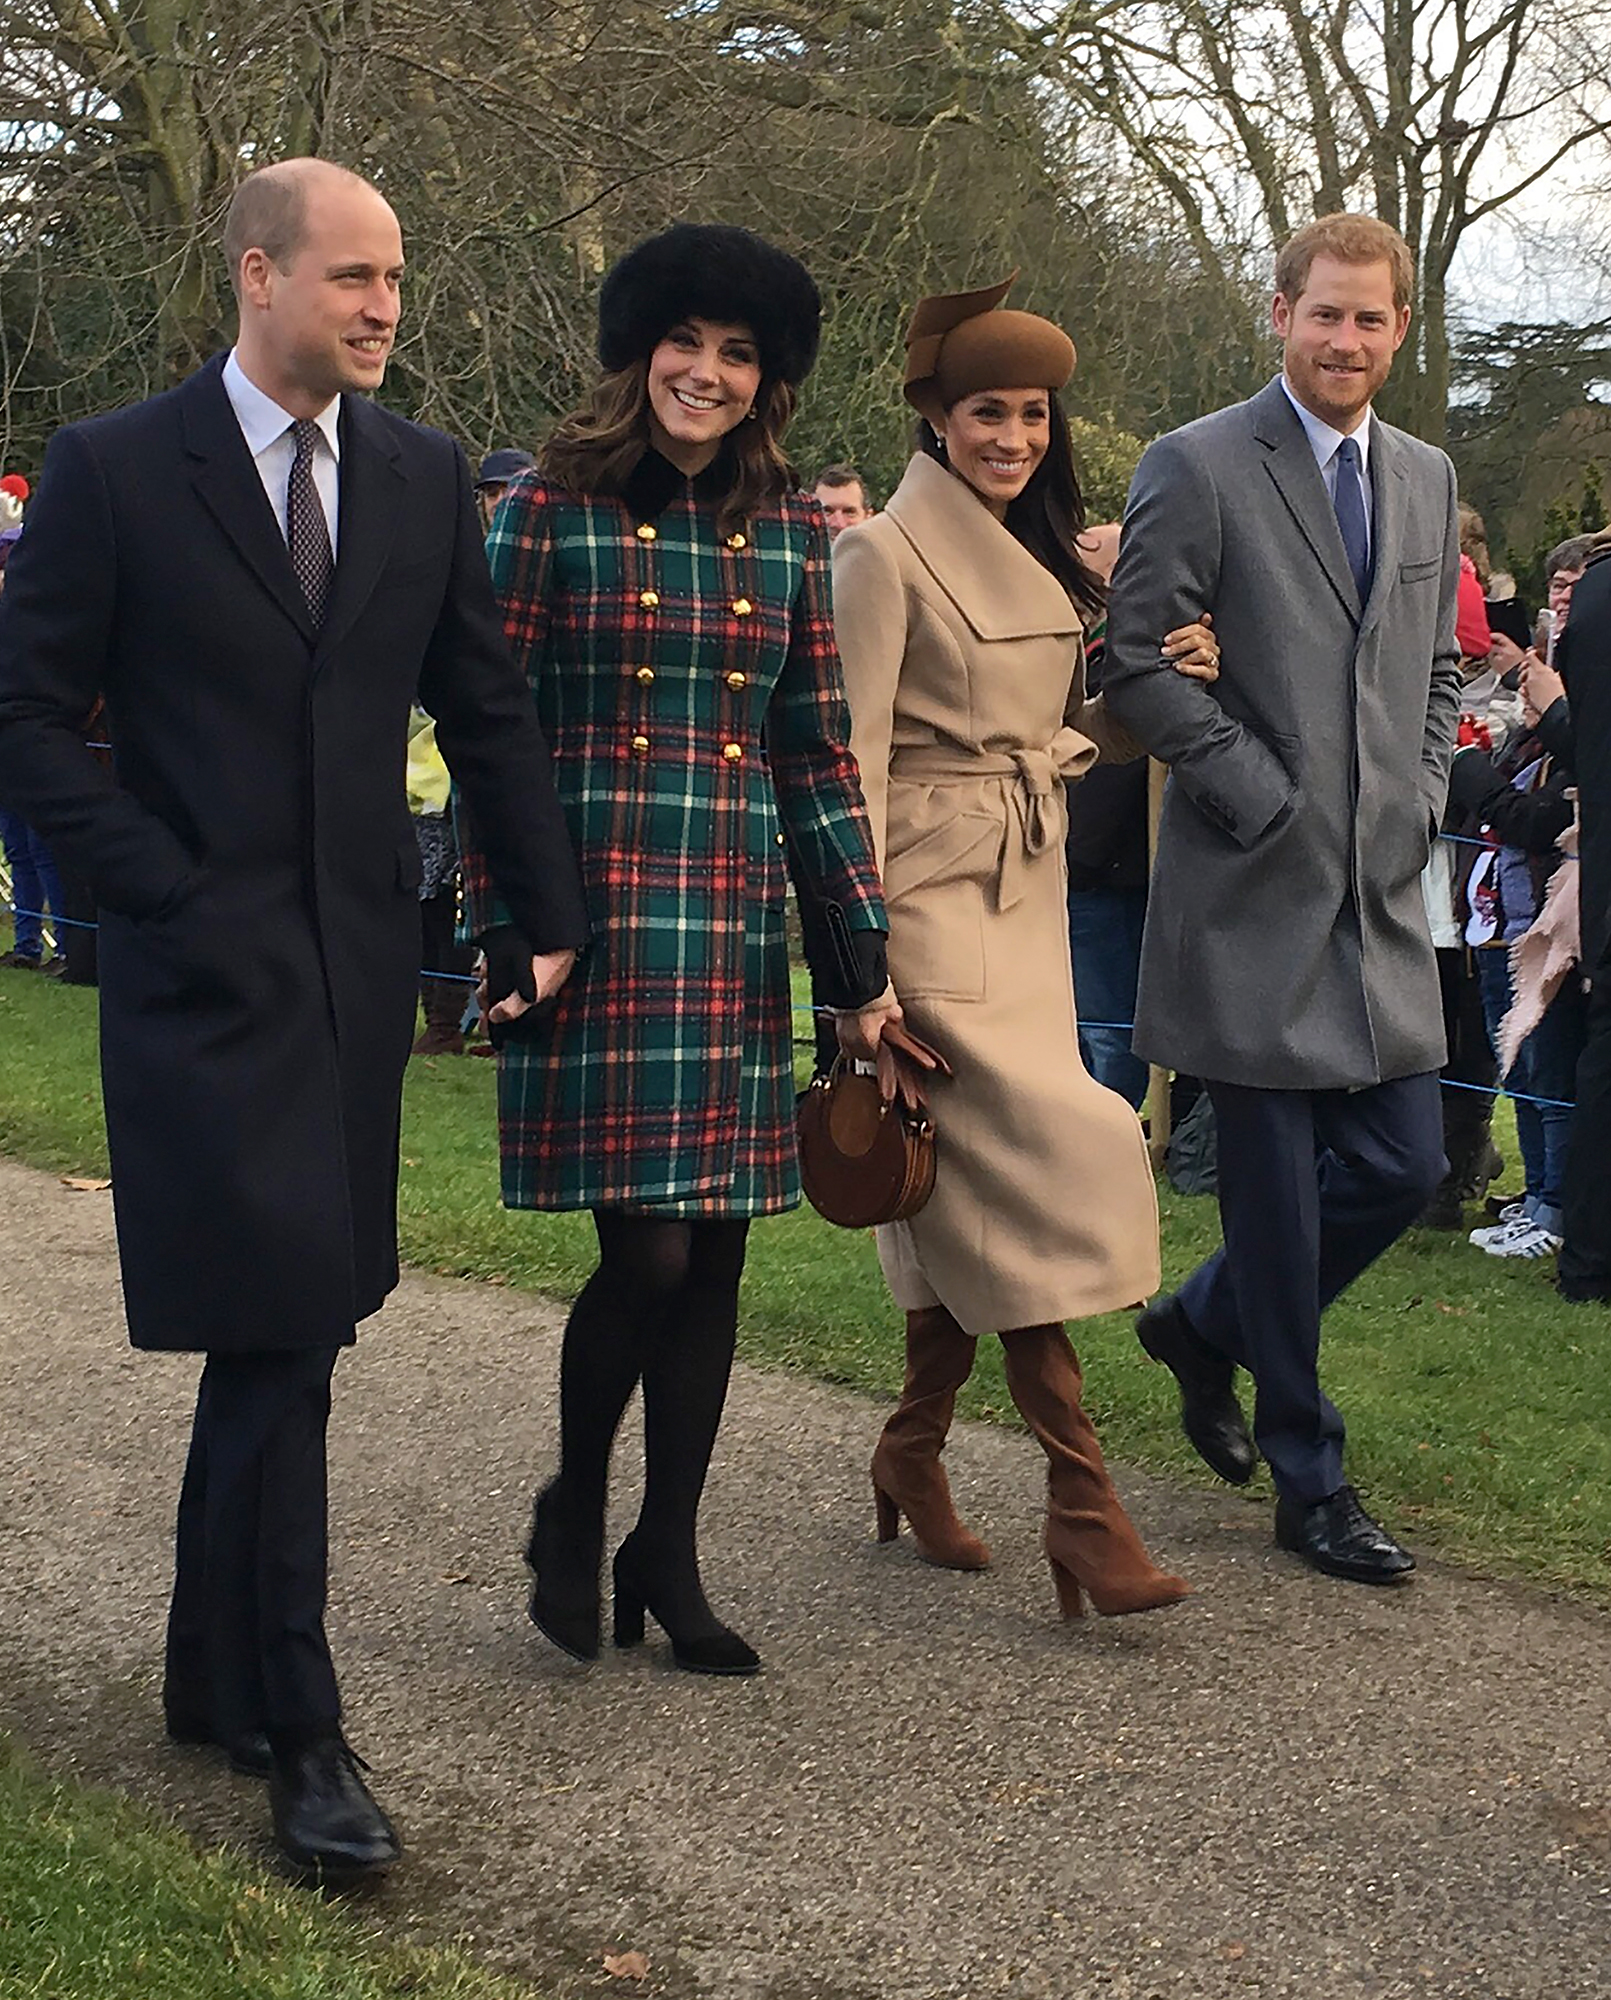 EXCLUSIVE: Meghan Markle, Prince Harry, Prince William, and Catherine, Duchess of Cambridge Attend Christmas Day Morning Service in England